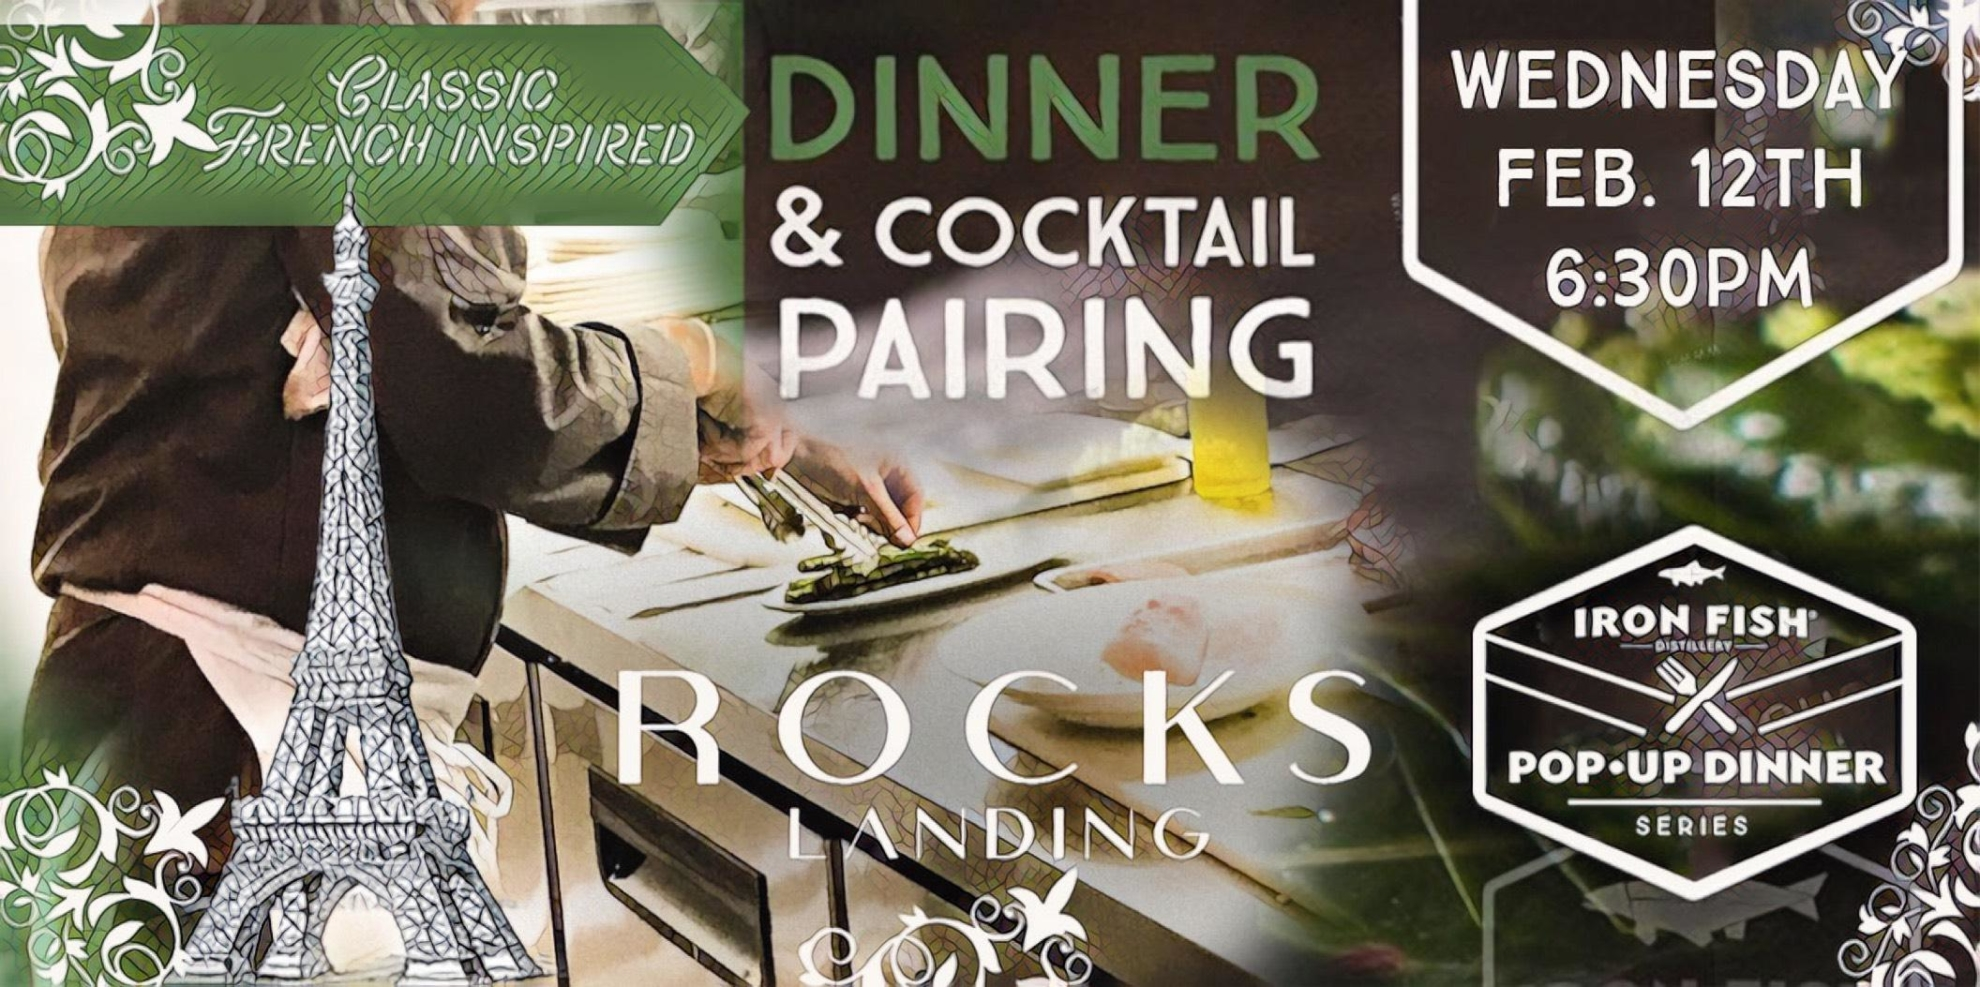 Rocks Landing X Iron Fish // French-Inspired Pop-Up Dinner